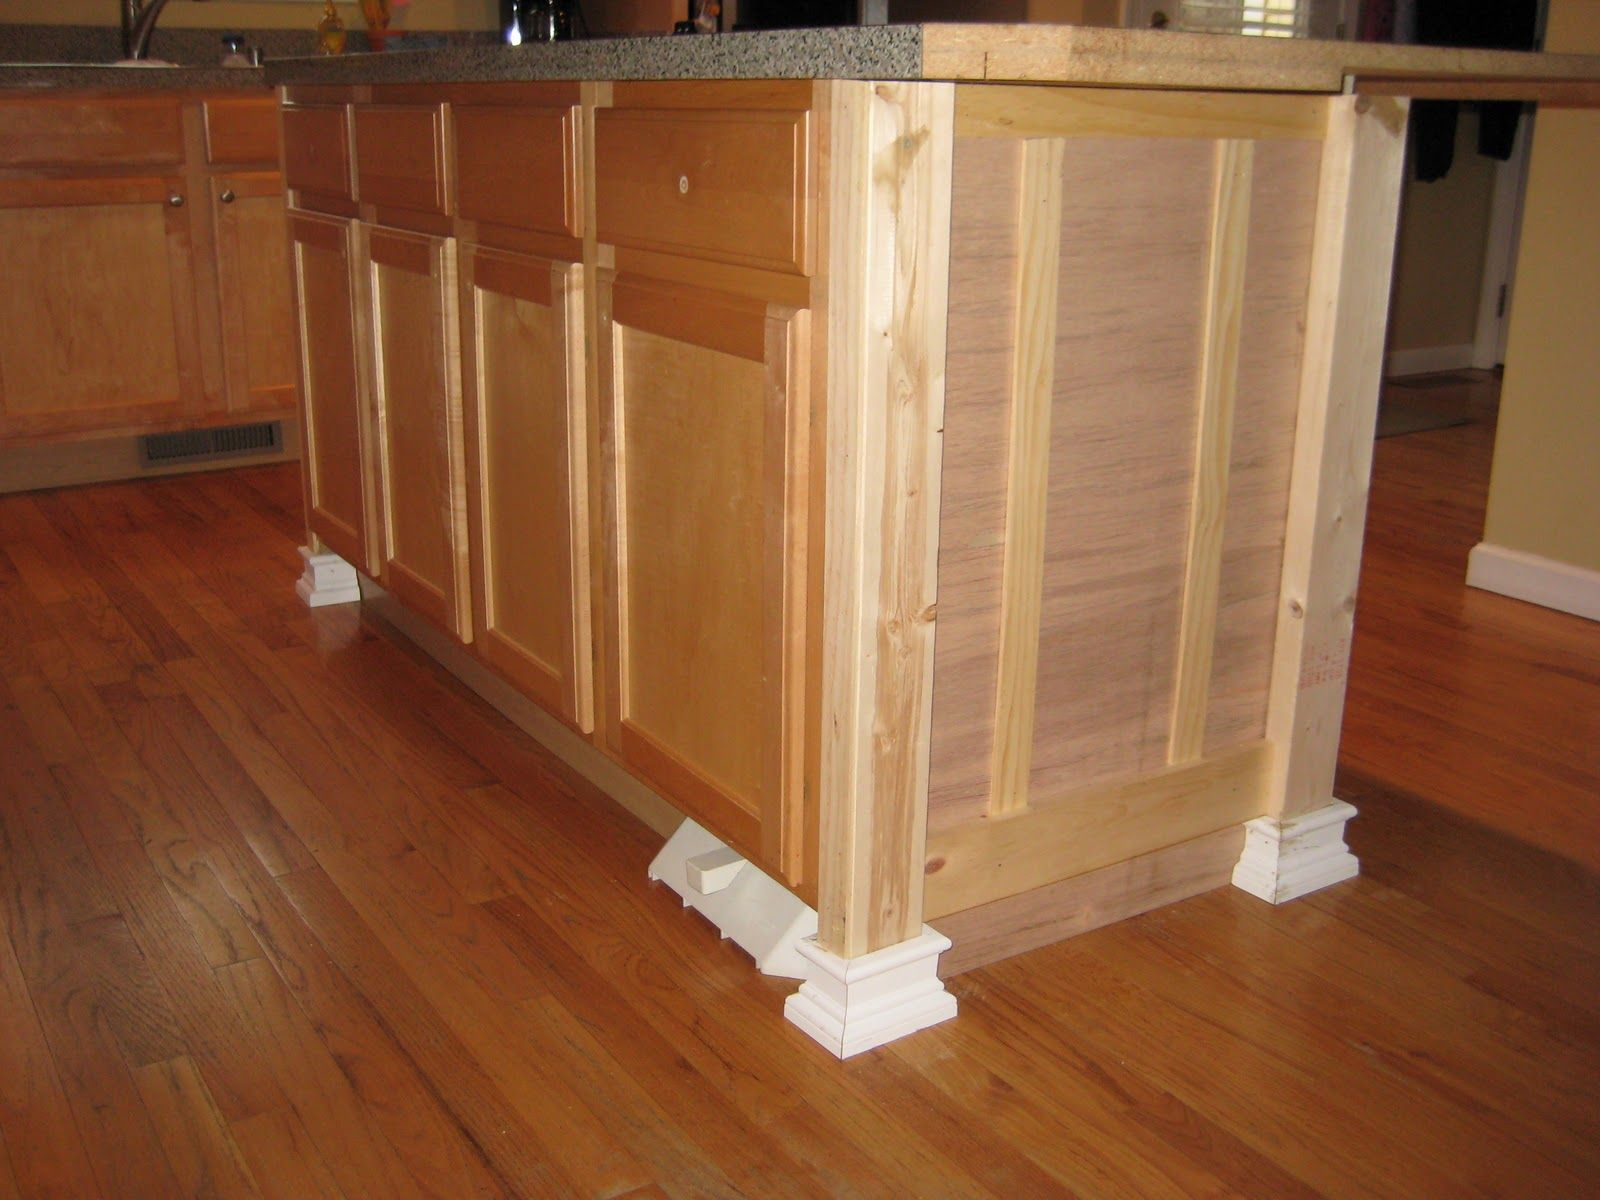 How to customize your kitchen island.